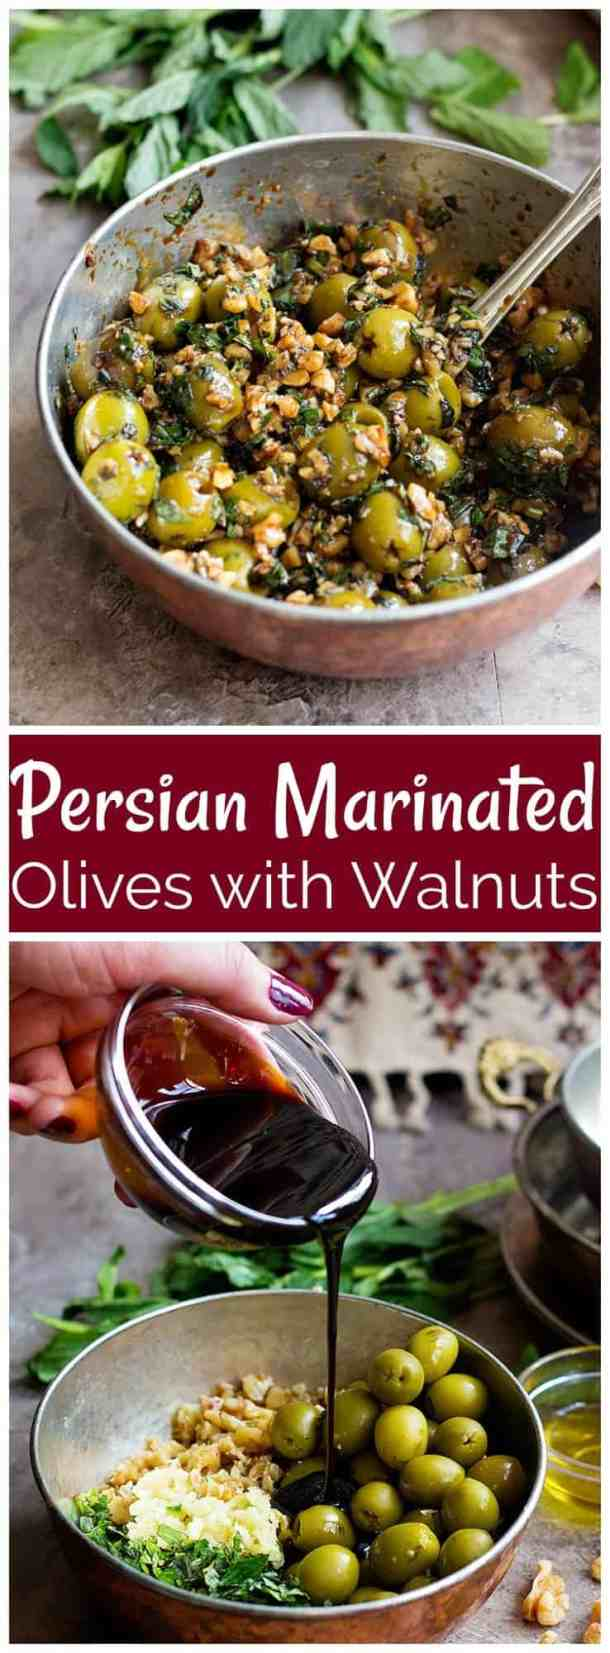 Persian Marinated Olives | Marinated Olives | Mediterranean food | Persian Side Dish | Persian Appetizer | Persian Recipes | Middle Eastern Recipes | Olives and Walnuts | Zeytoon | Zeytoon Parvardeh | Unicornsinthekitchen.com